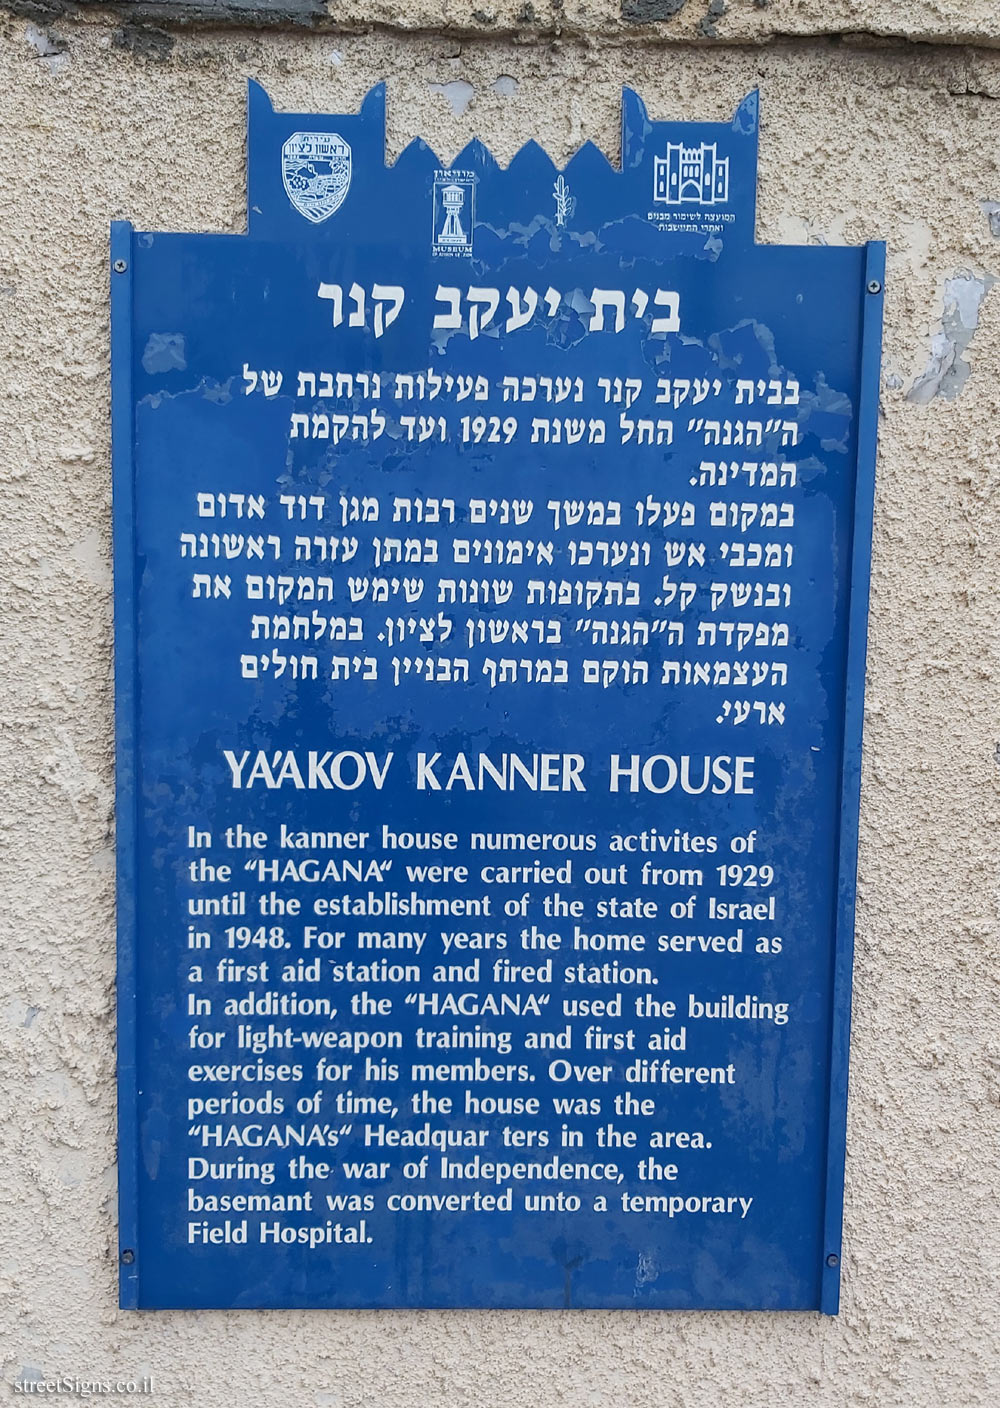 Rishon LeZion - Heritage Sites in Israel - Ya'akov Kanner House